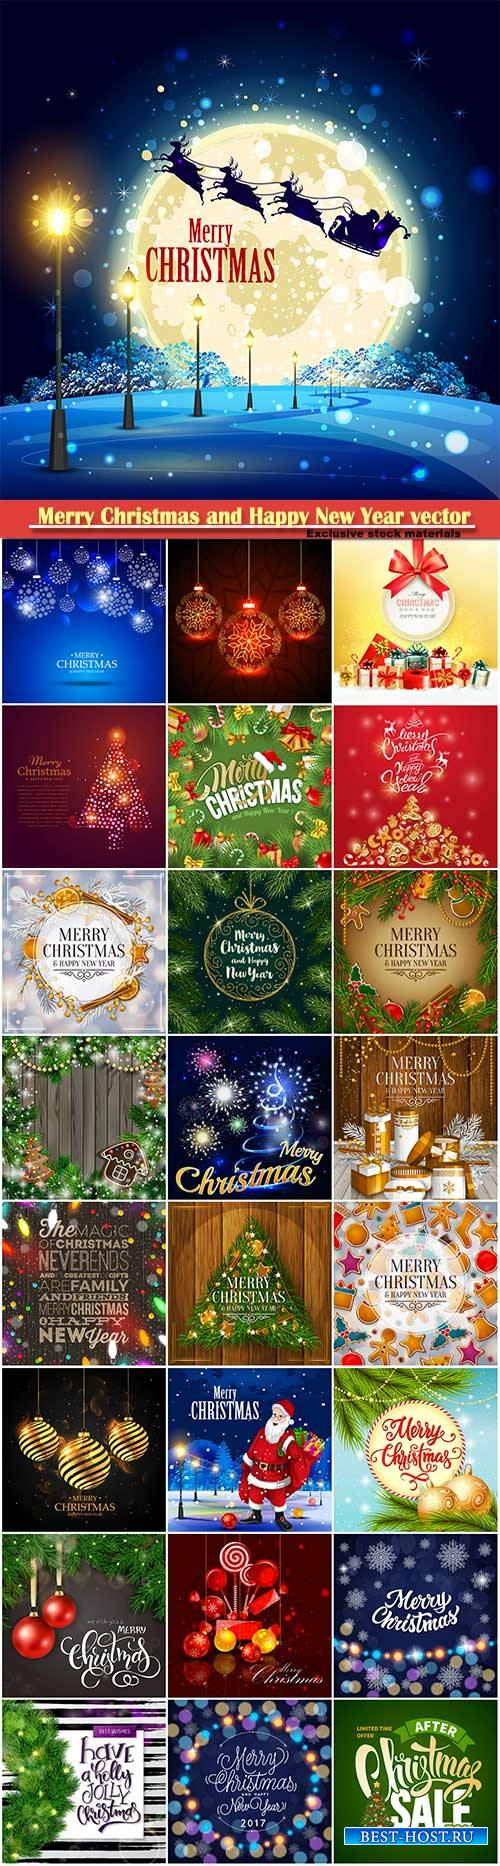 Merry Christmas and Happy New Year vector design # 29